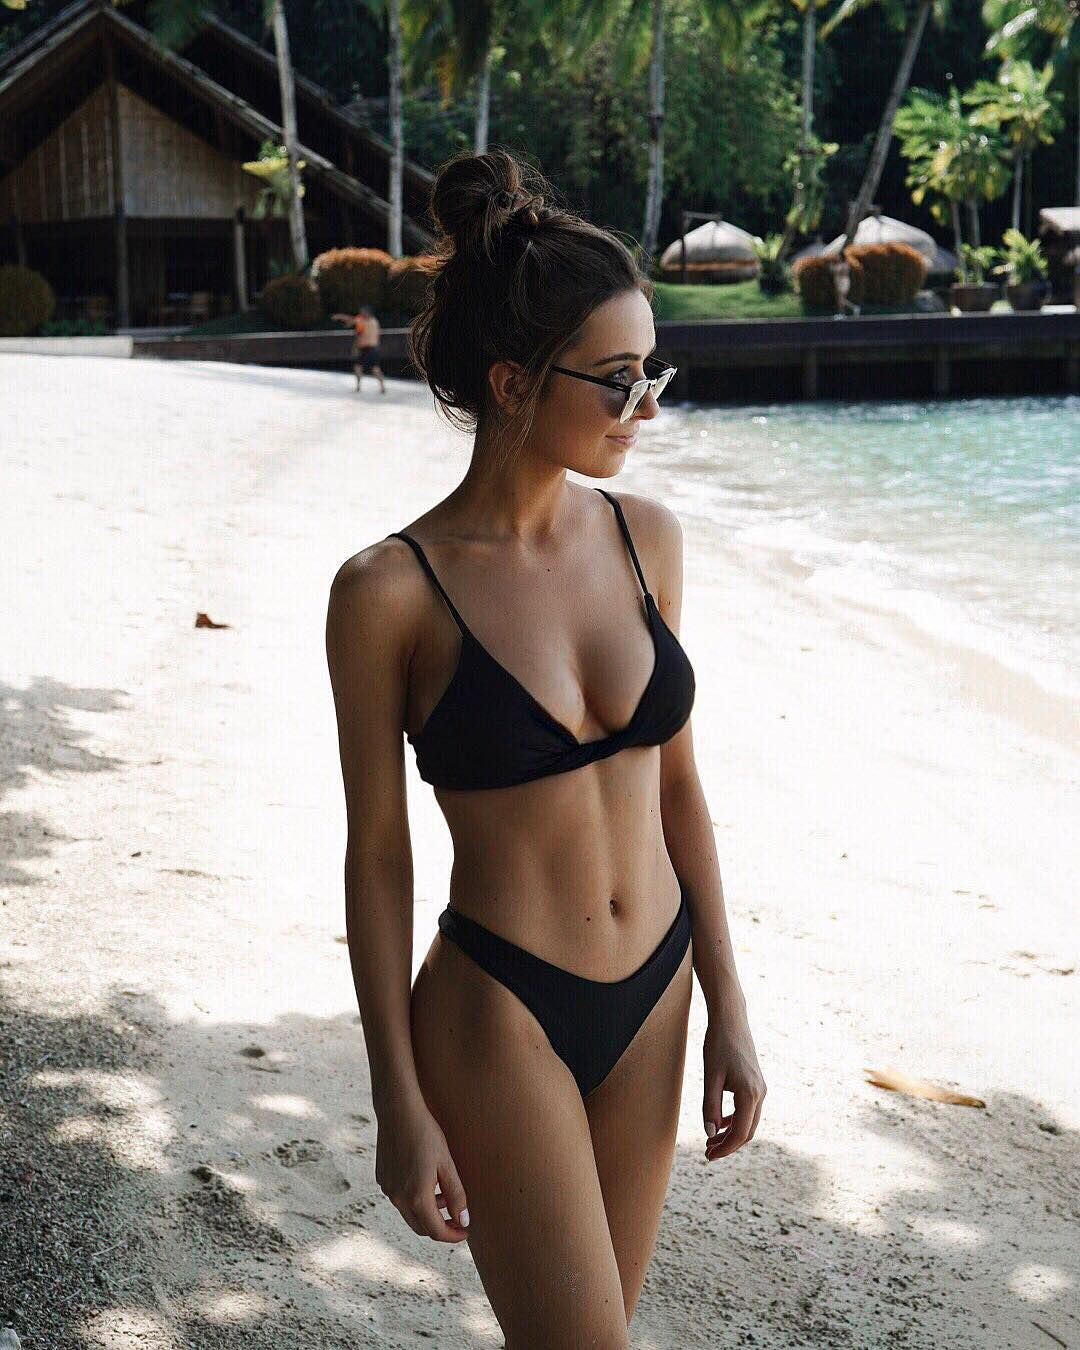 31 8k Likes 40 Comments Fitness Body Fitness Fashion On